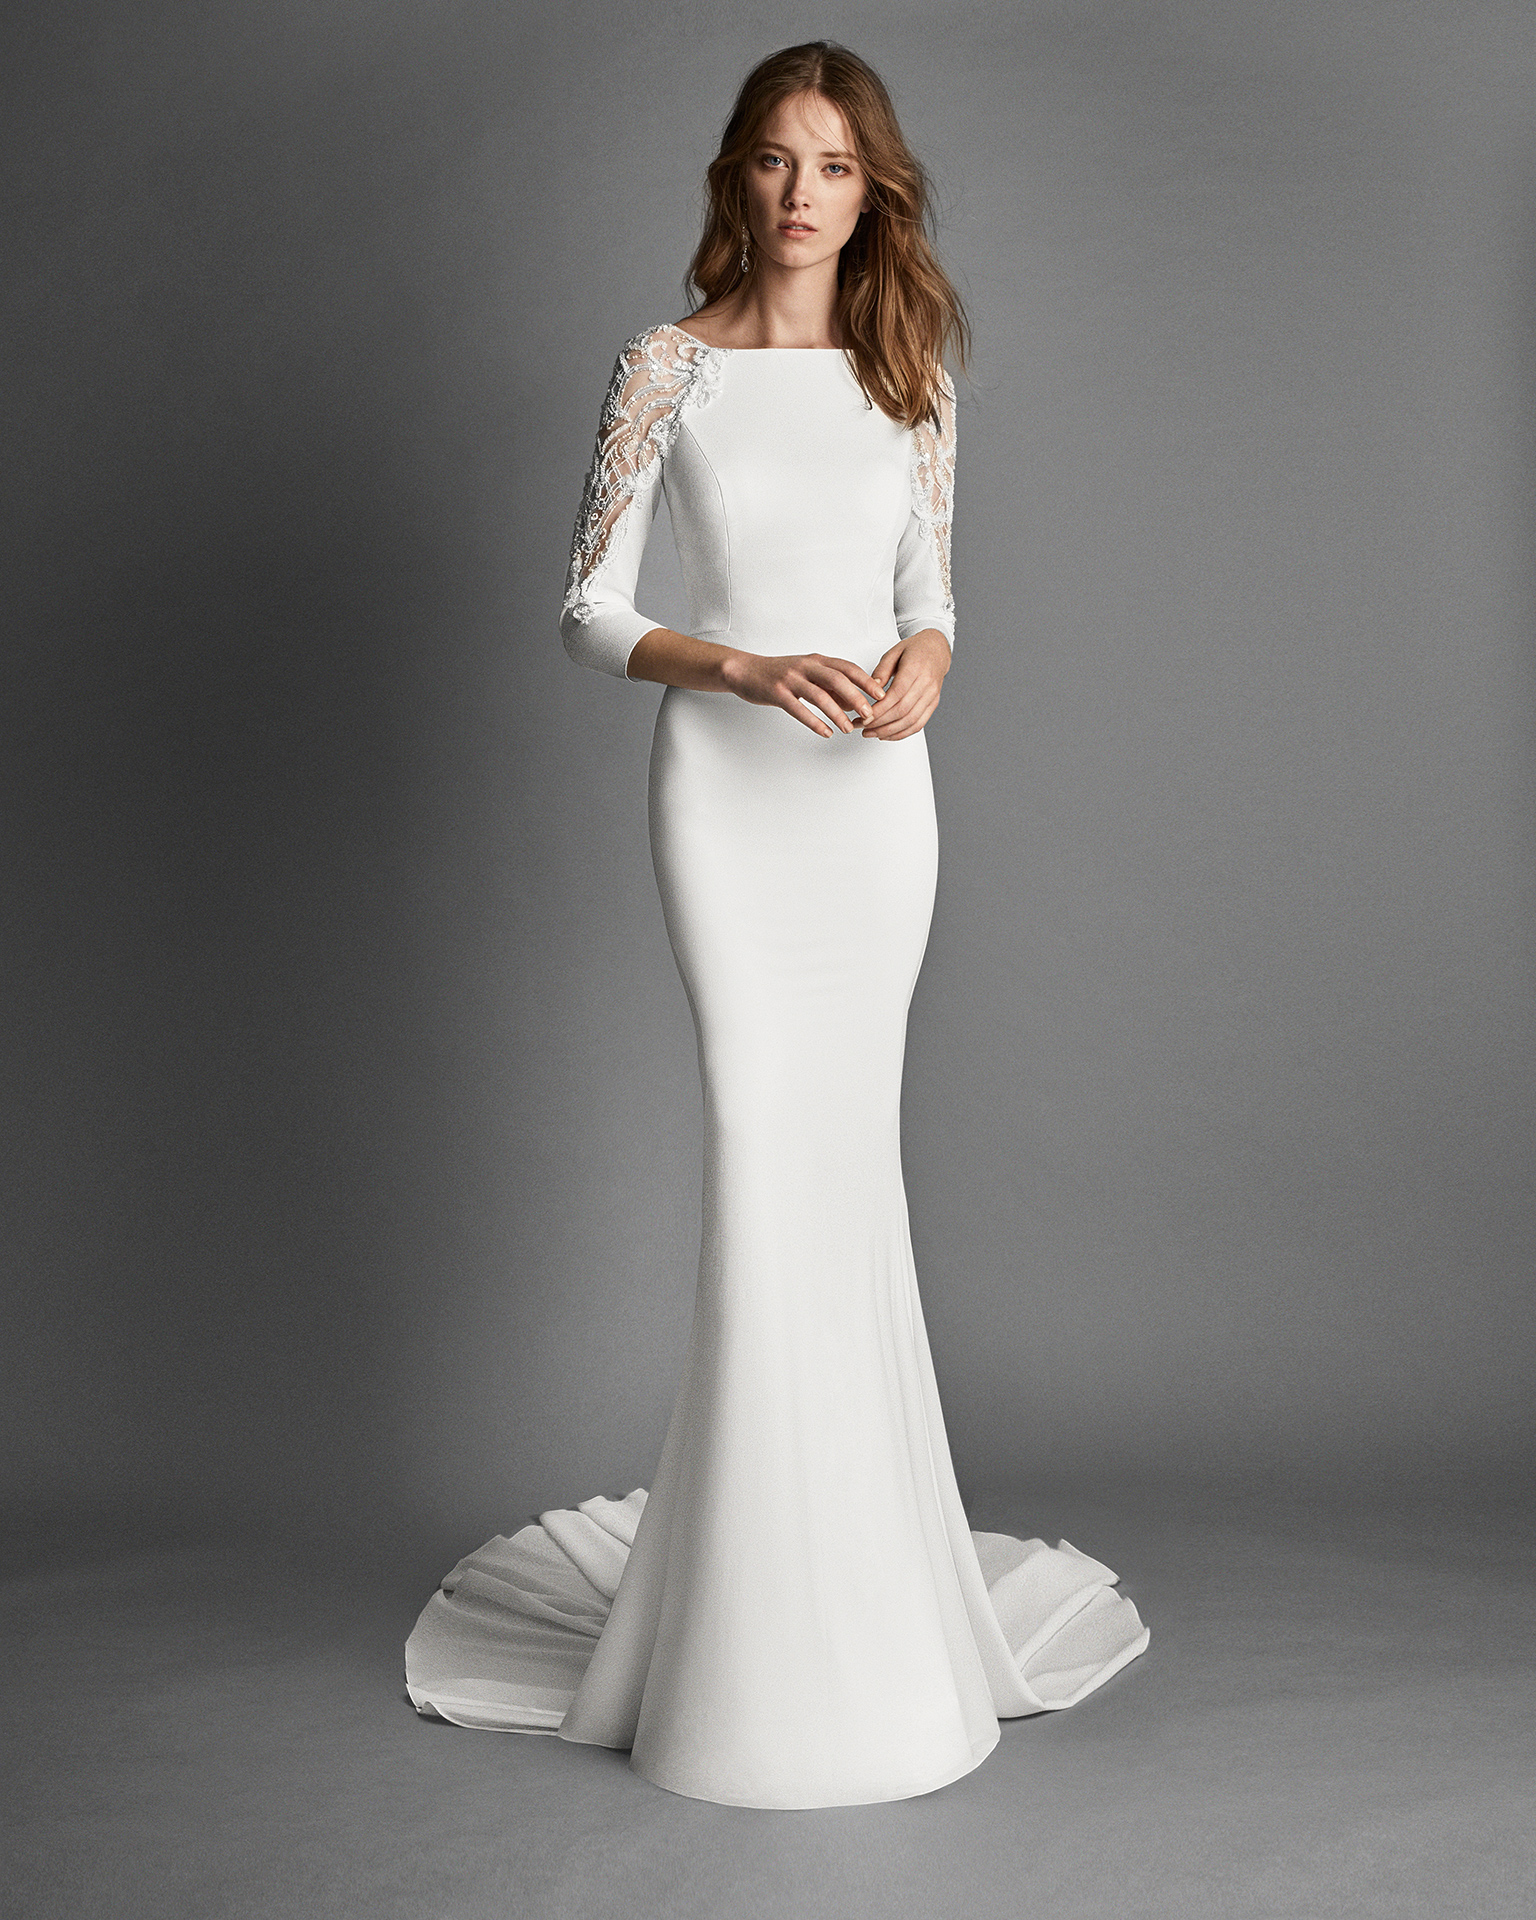 Mermaid-style crepe Georgette wedding dress with long sleeves and jewelled back.